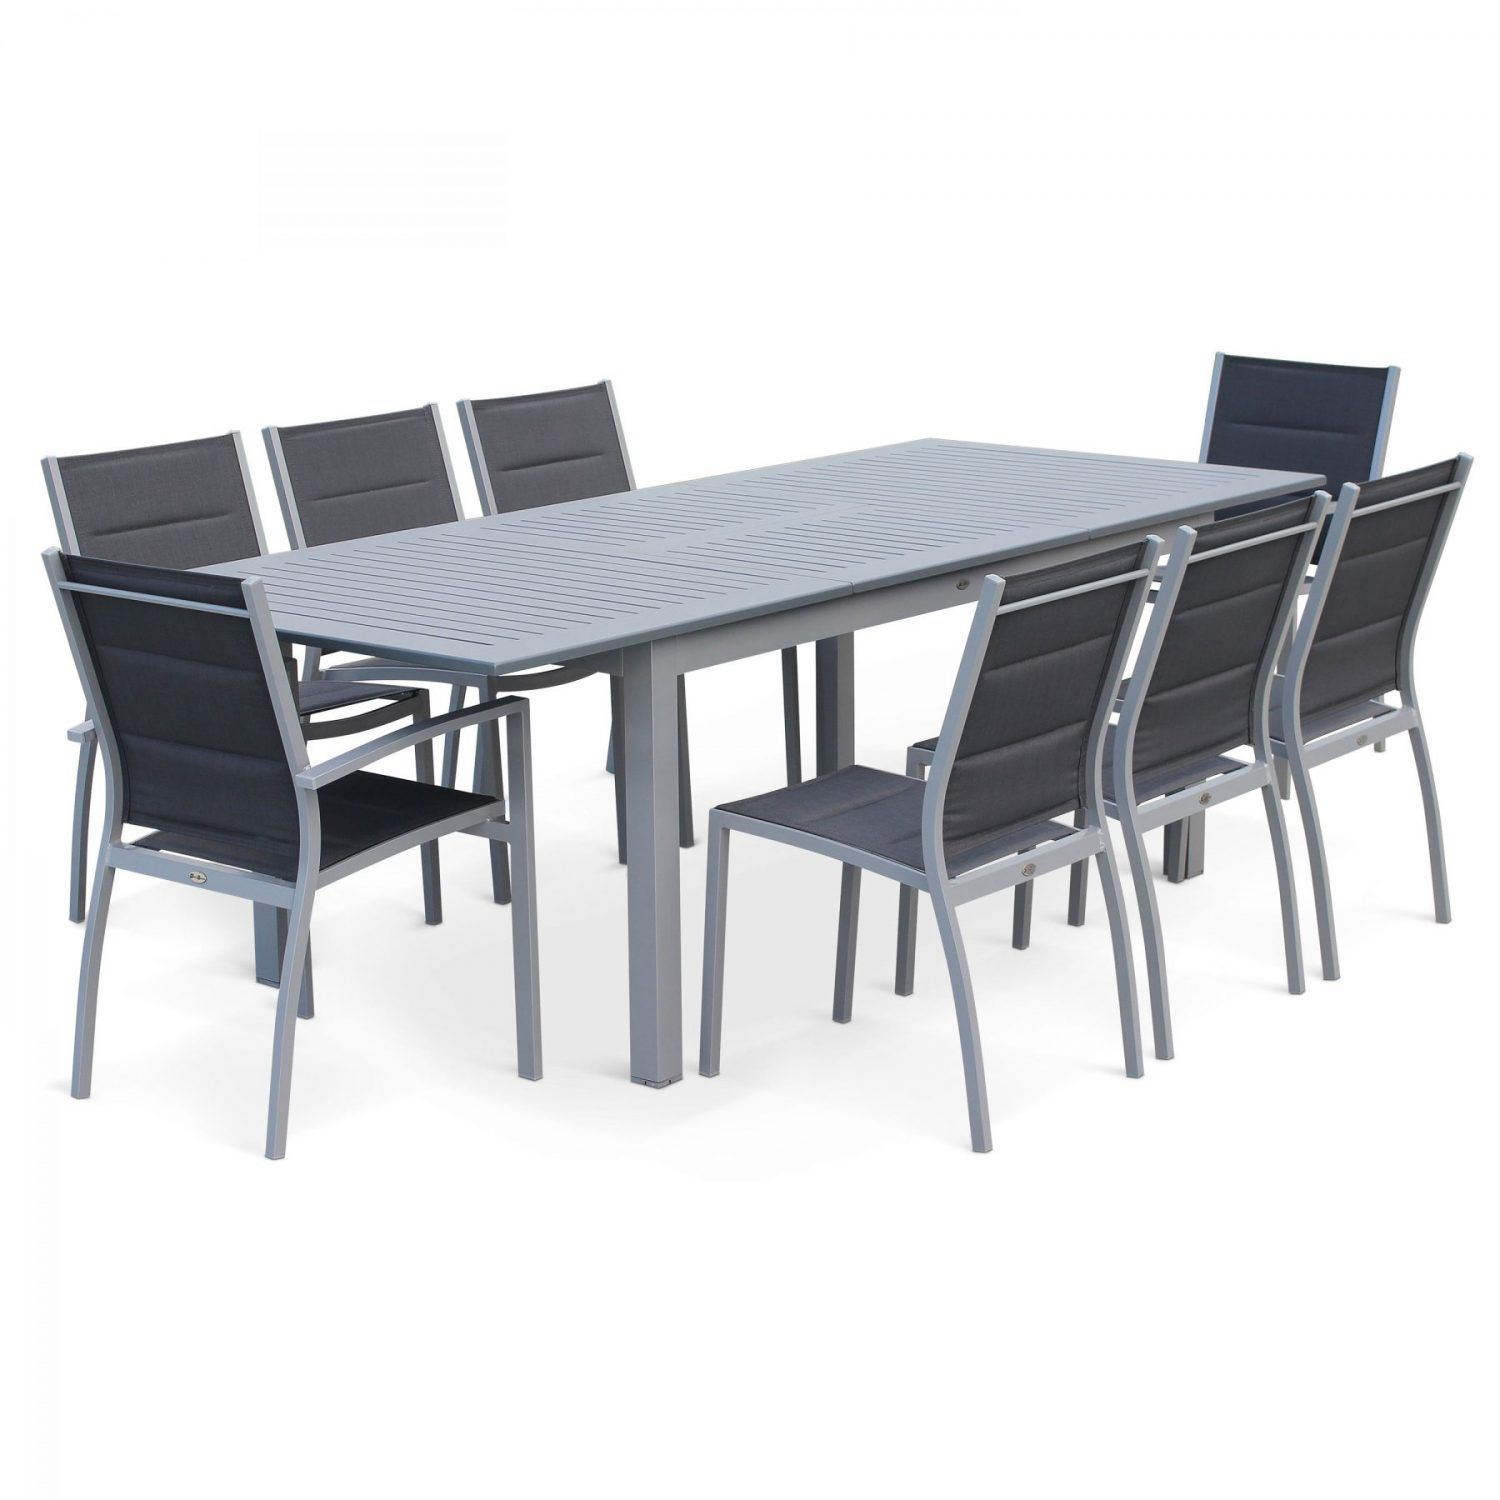 Chicago 8 10 Seater Dining Set White Grey Garden Dining Set